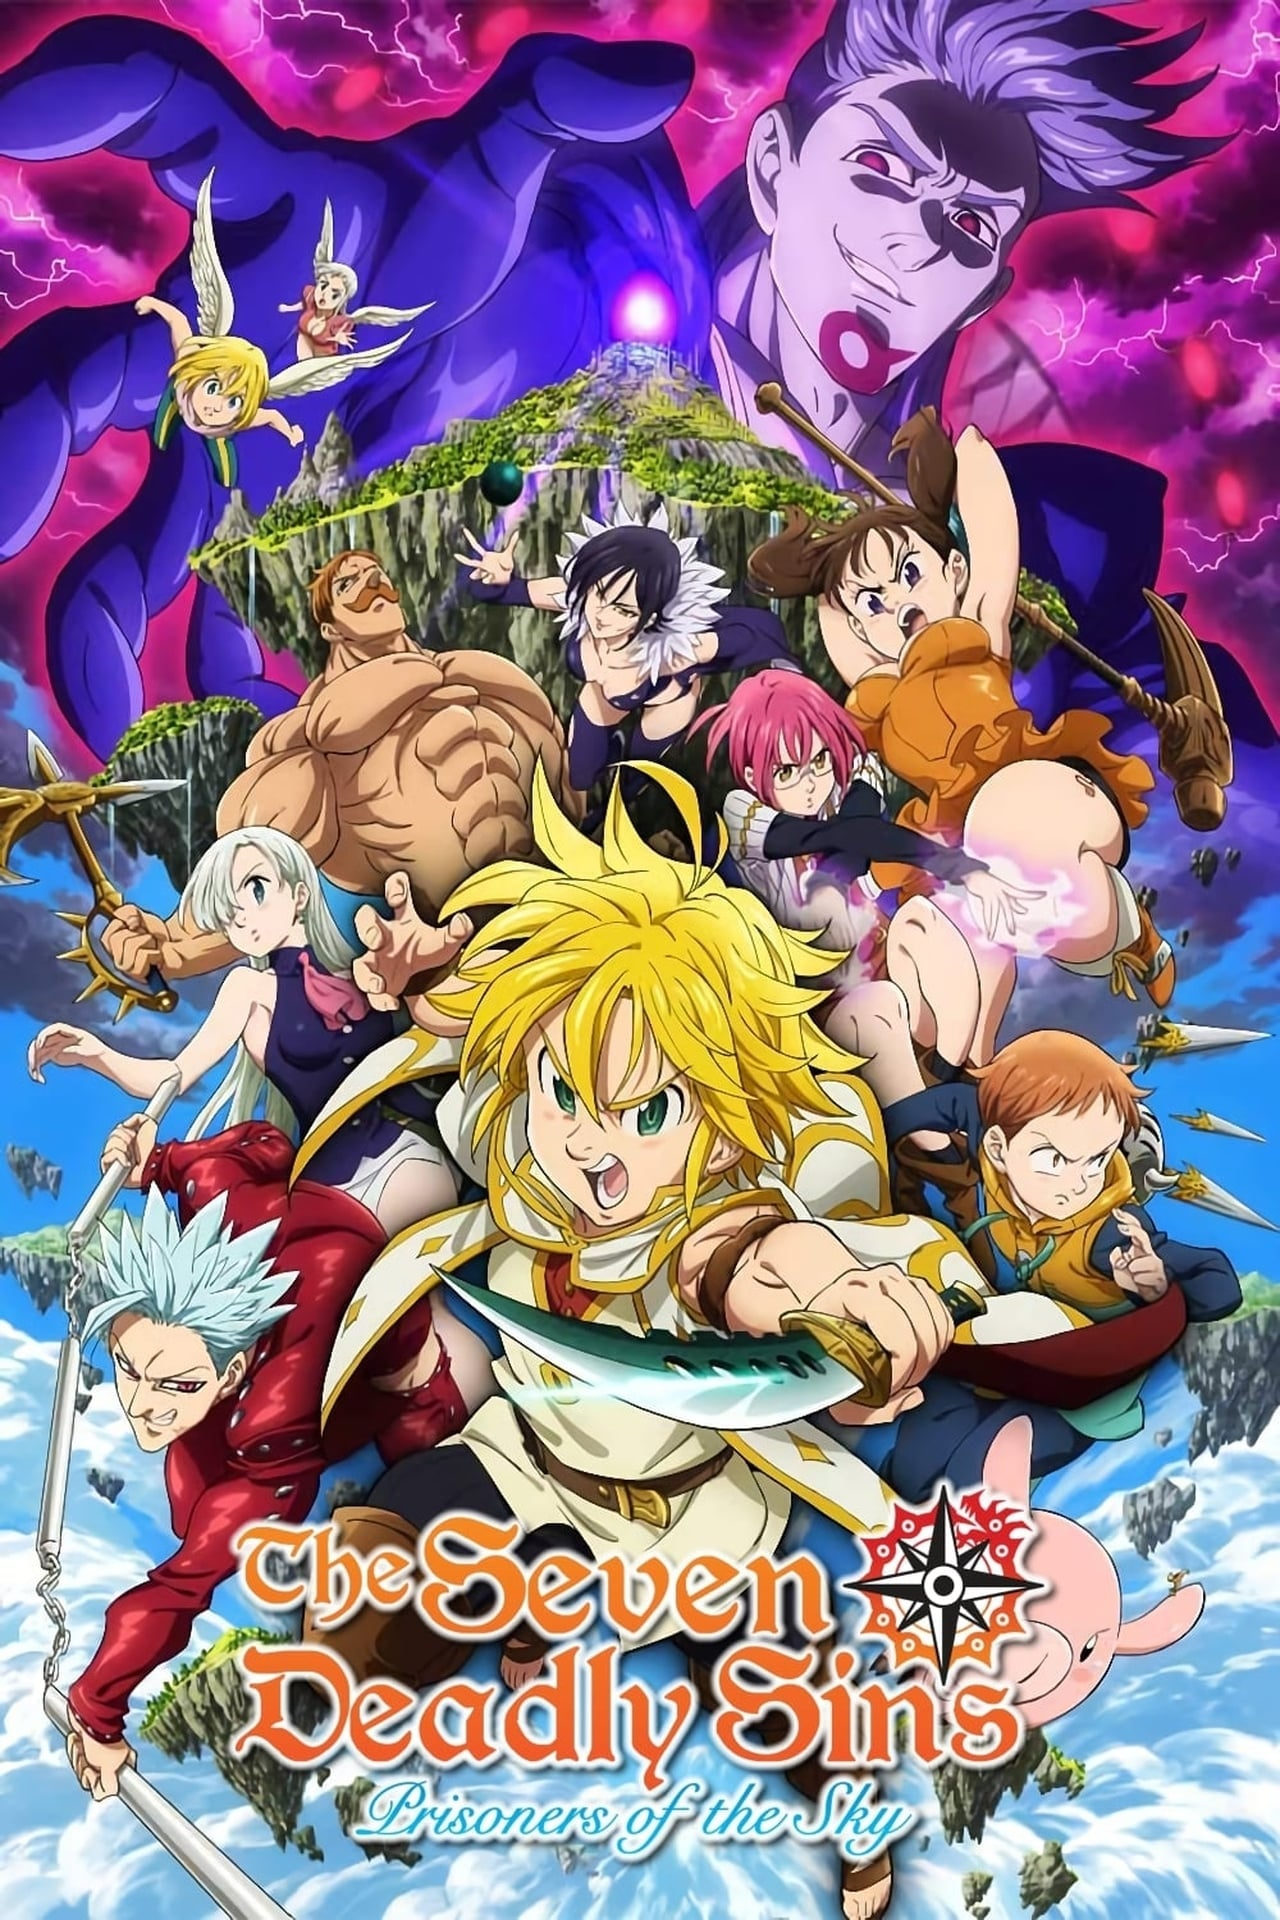 Seven Deadly Sins Episodes - Seven Deadly Sins Episodes